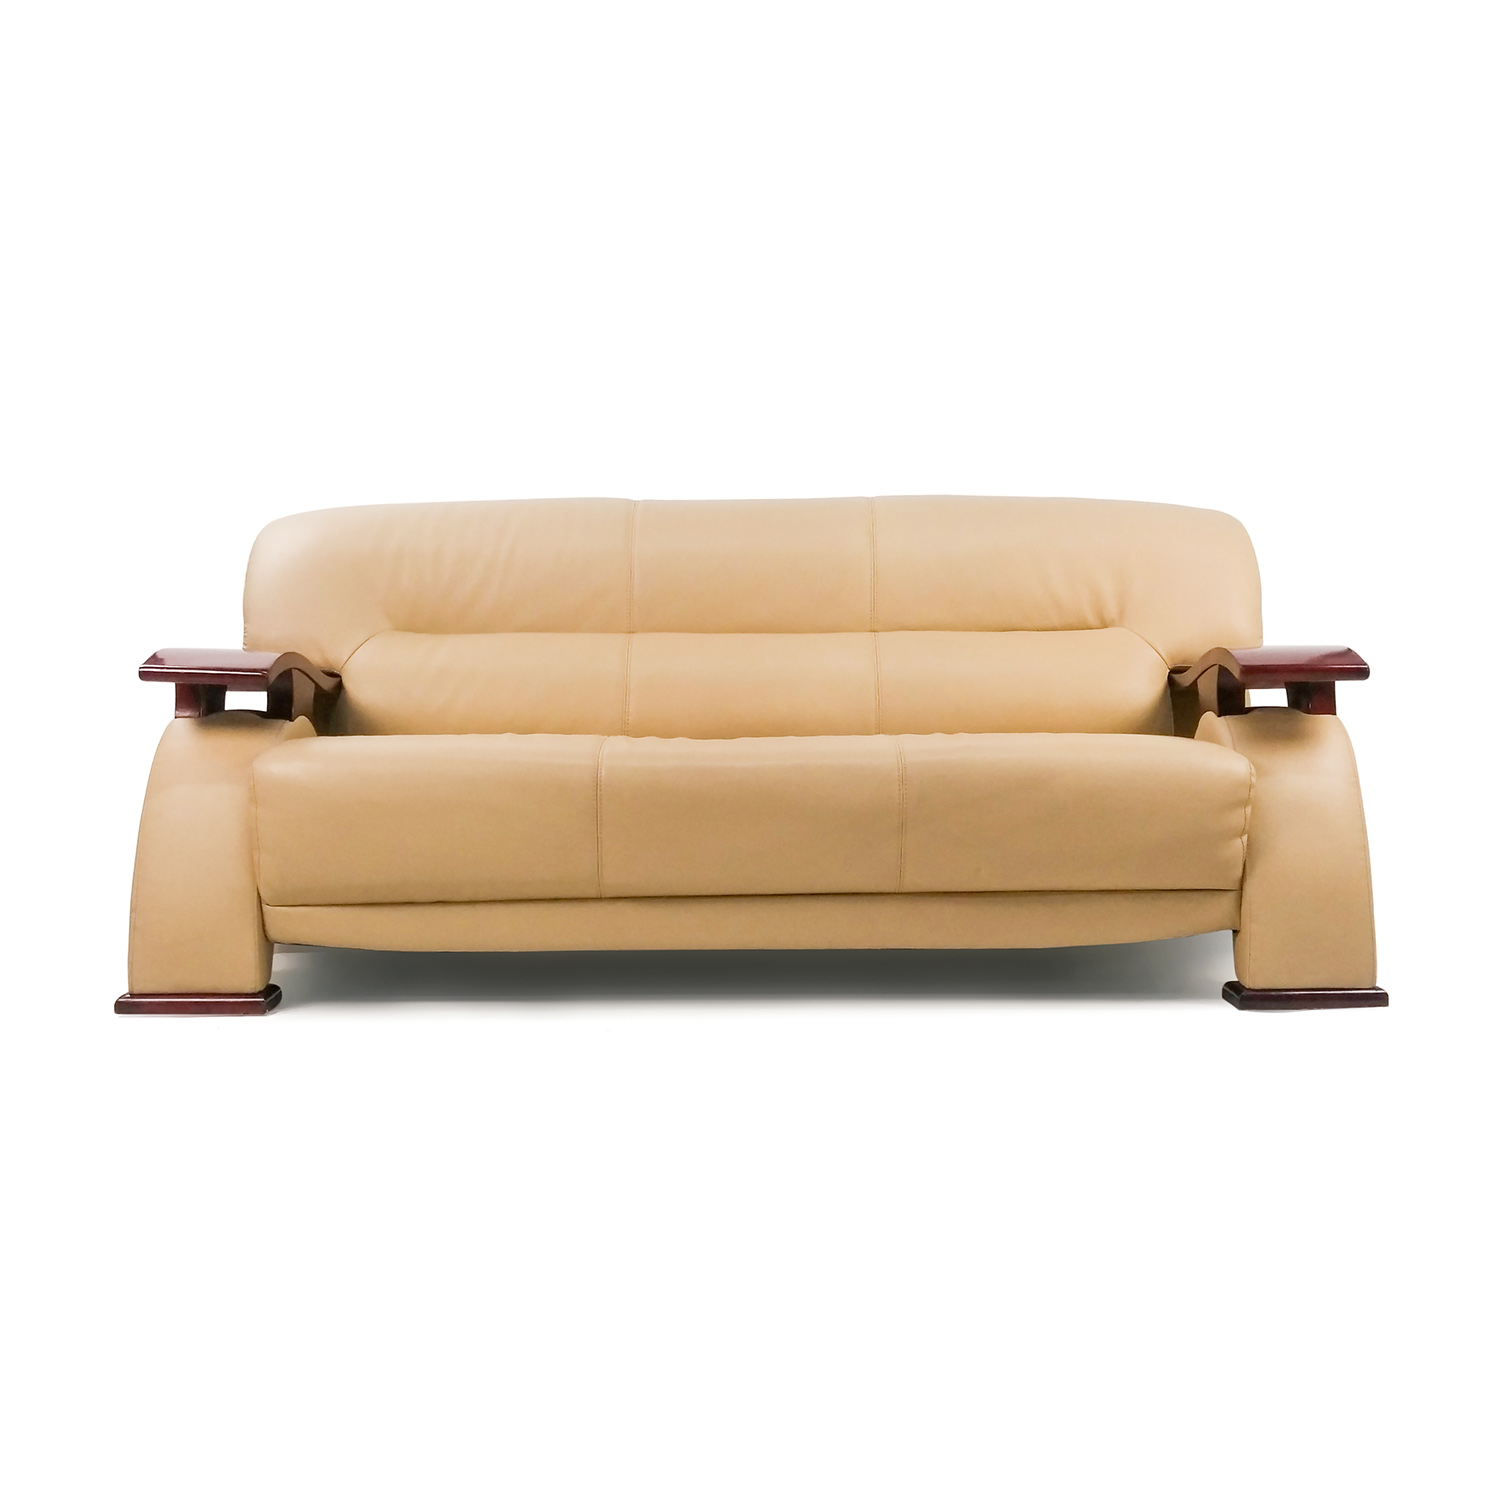 Unknown Brand Contemporary Beige Leather Sofa with Wood Arms discount